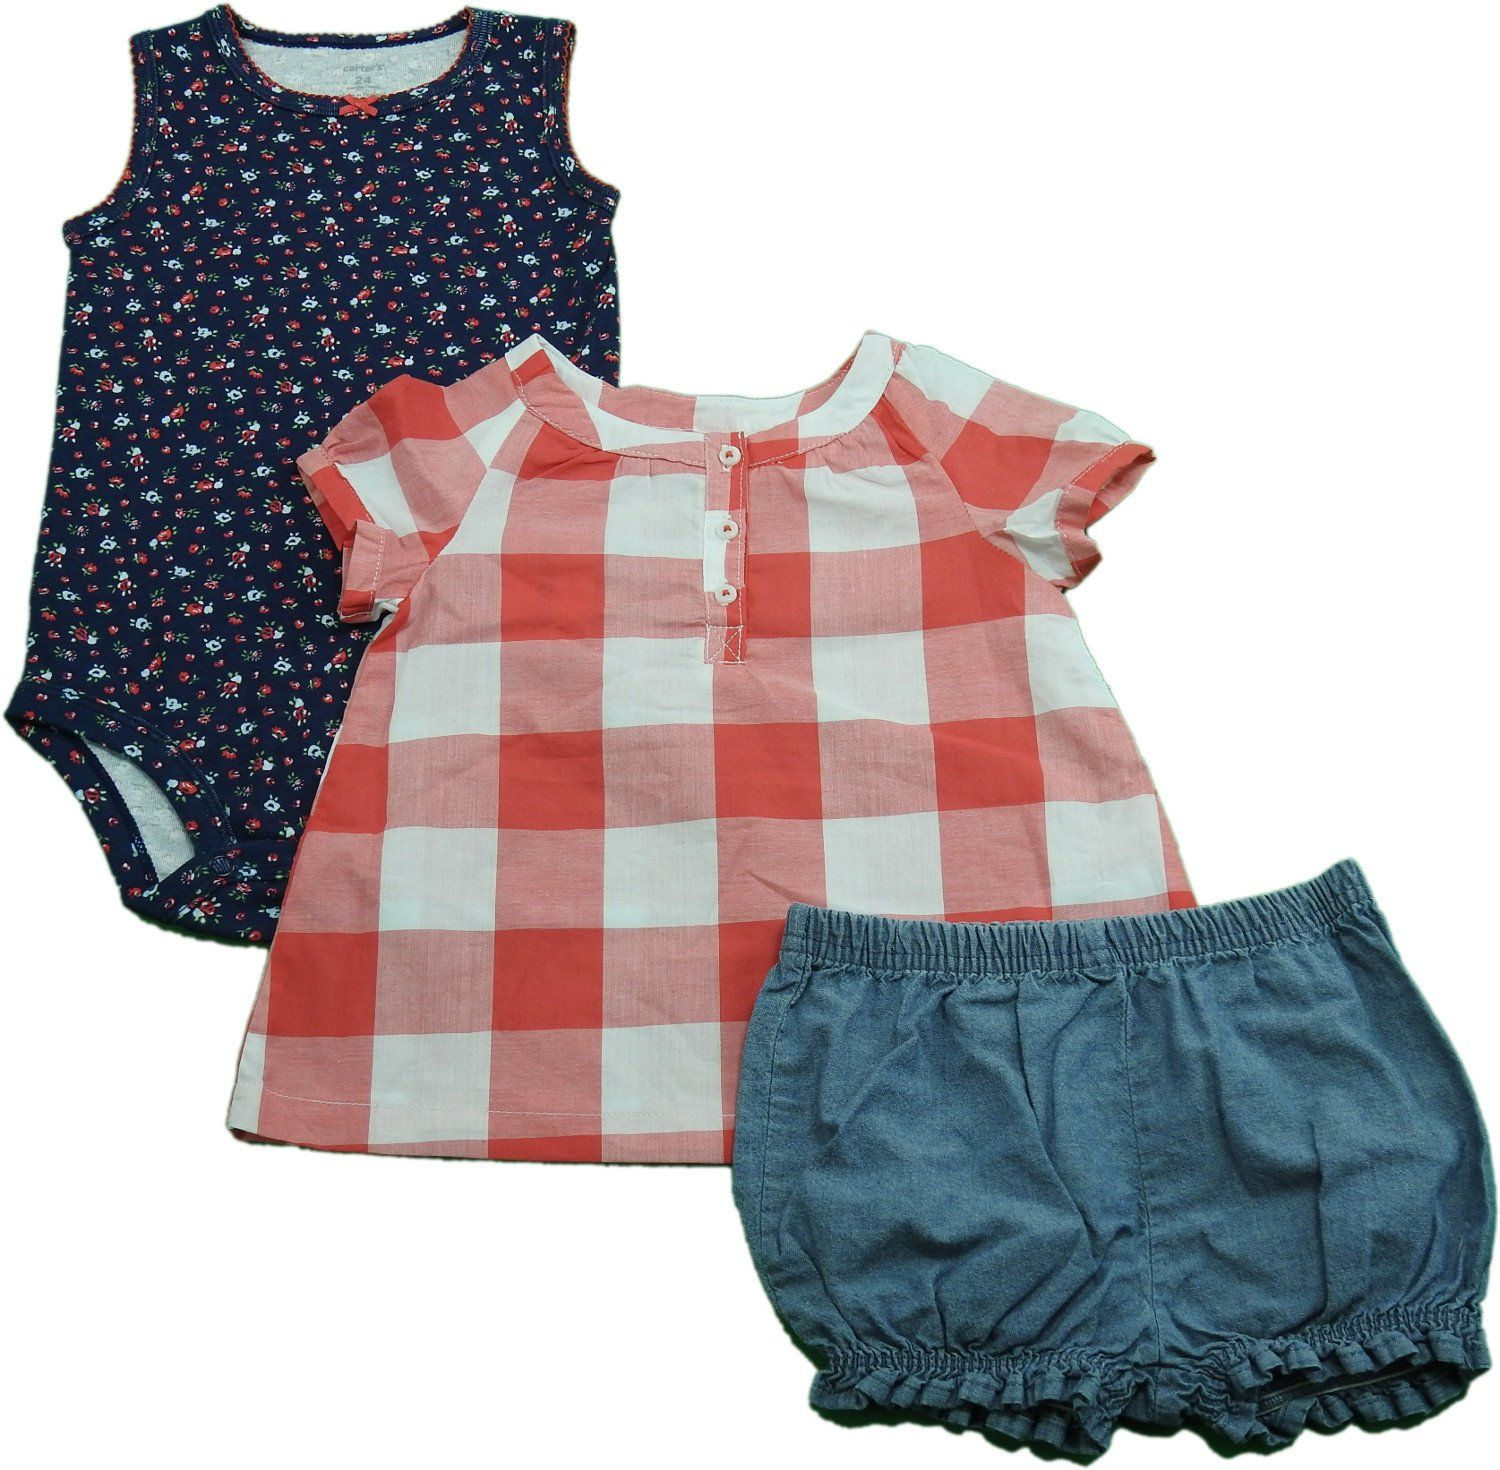 Shirt design for baby girl - Carters Baby Girls 3 Piece Shirt Bloomers And Bodysuit Red Blue